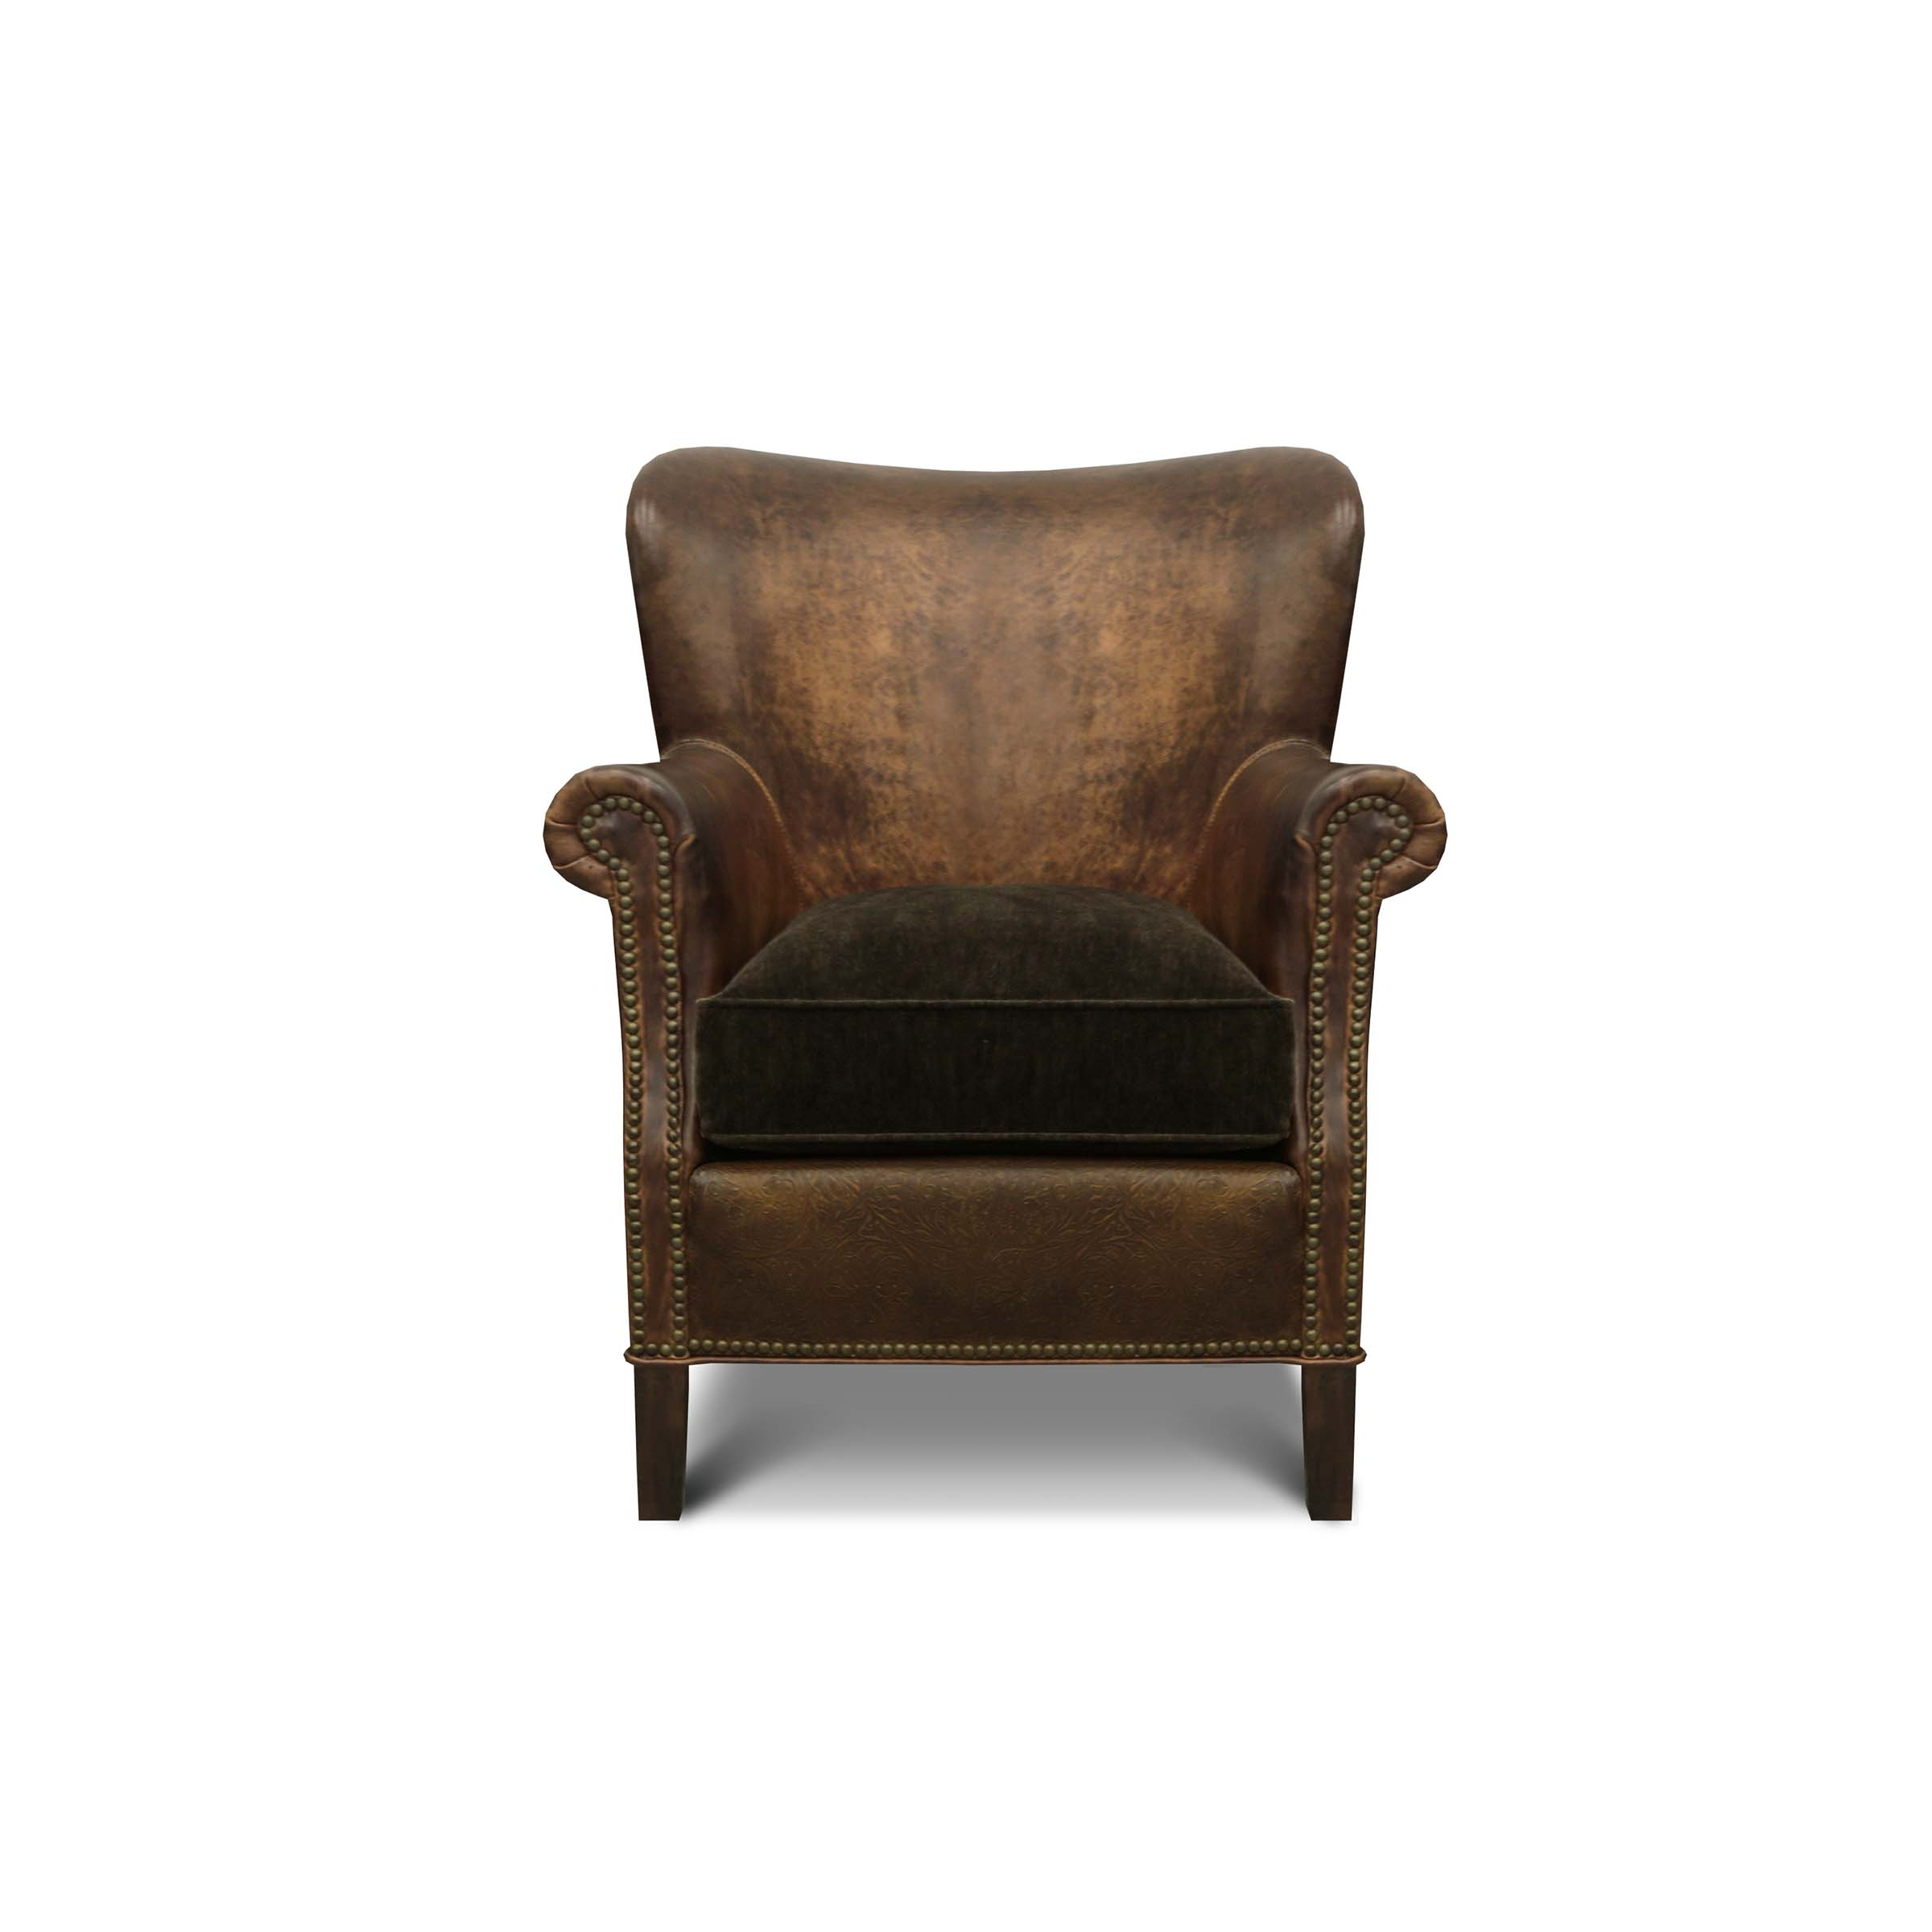 HITSY - 1E Accent Chair 2